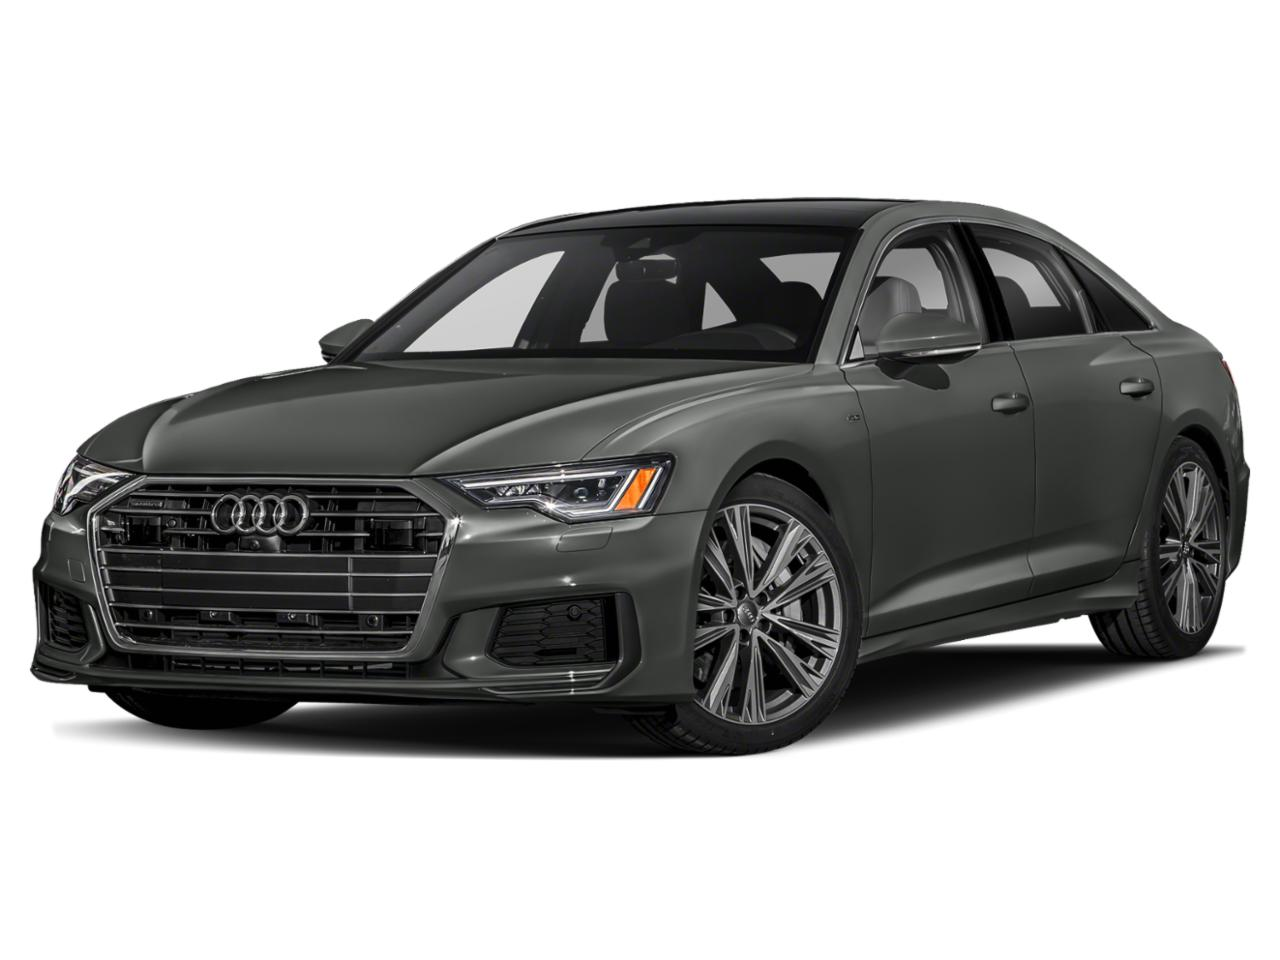 2019 Audi A6 Vehicle Photo in Allentown, PA 18103